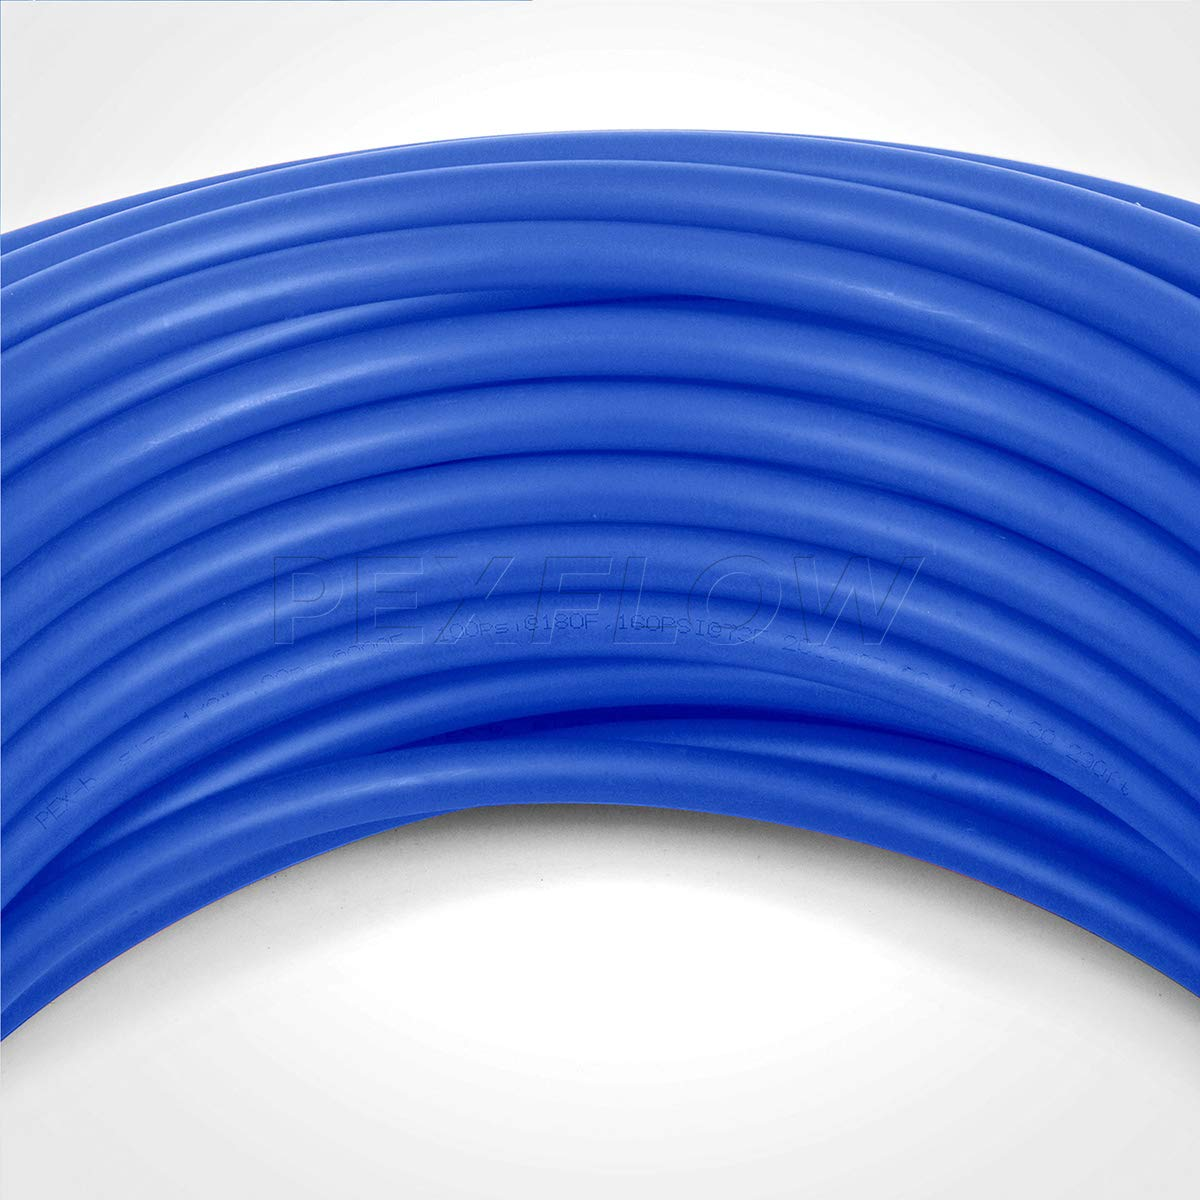 Pexflow PFW-B1100 PEX Potable Water Tubing Non-Barrier Pipe, 1 Inch x 100 Feet, Blue by PEXFLOW (Image #6)